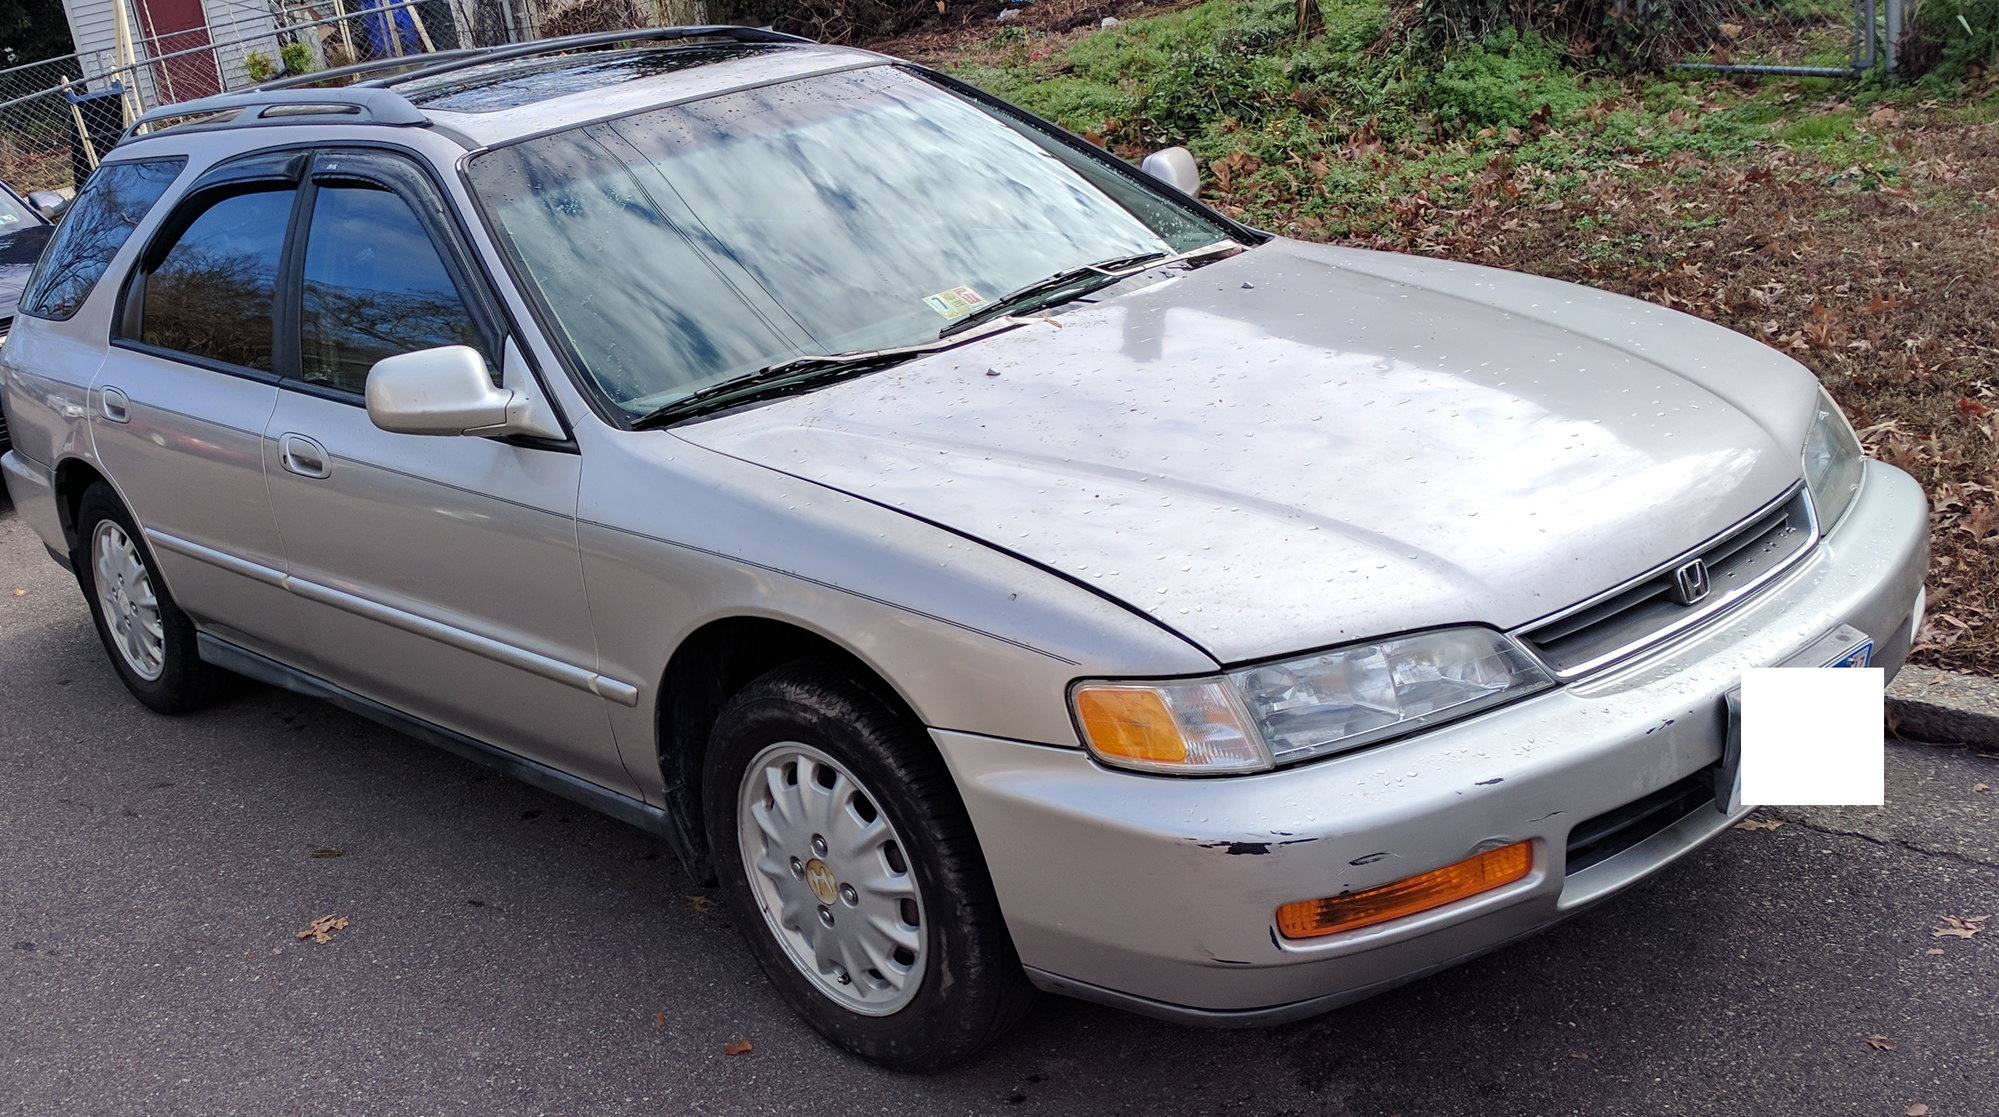 97 Honda Accord Ex Wagon Auto To Manual Swap Tech 1999 Ecu Location P0453 For Evap High Pressure I Will Have Go Back And See If Left Anything Disconnected Does Anyone Any Knowledge On What Should Be Looking